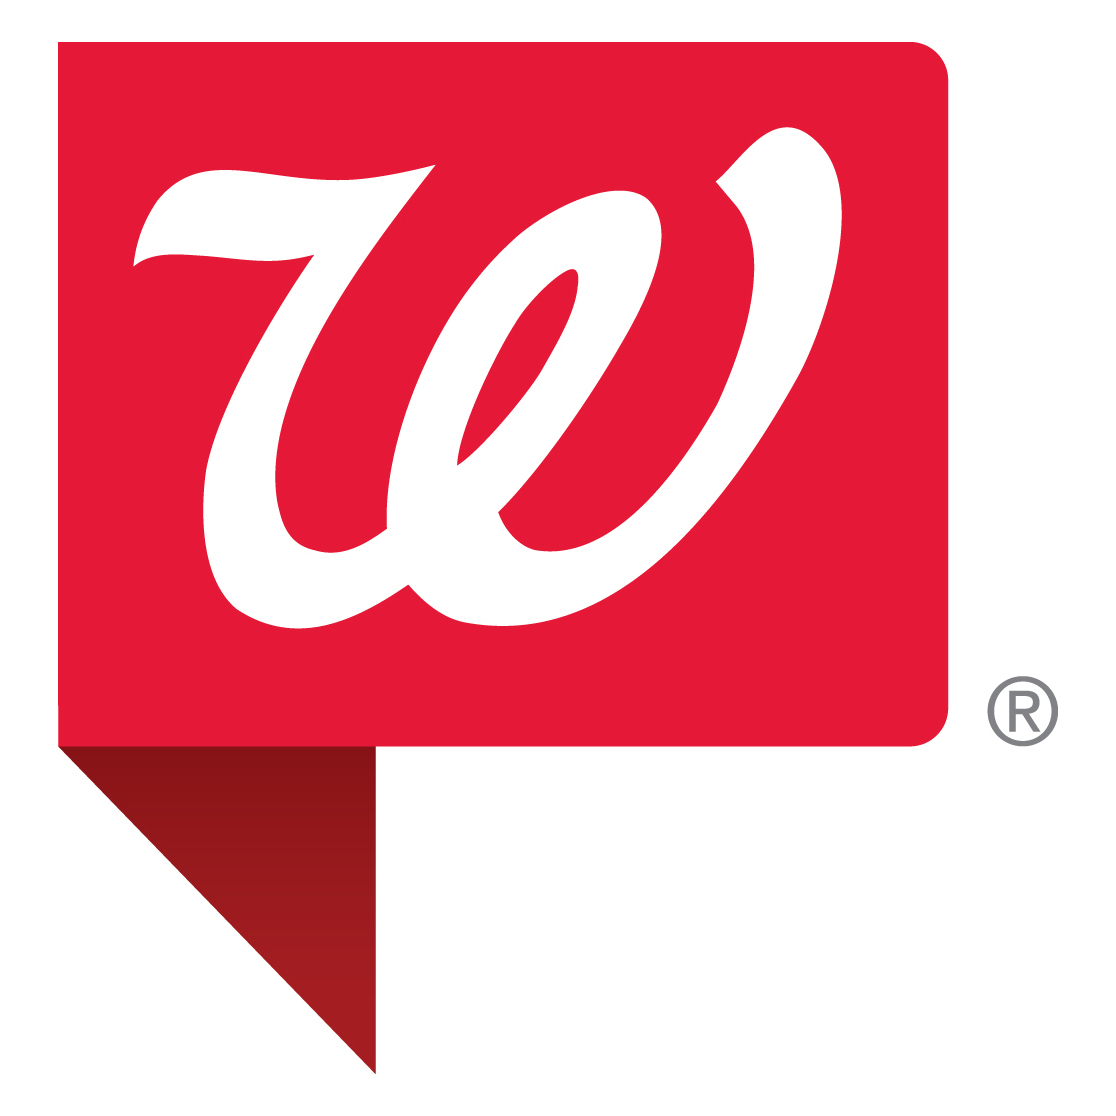 Walgreens - Weatherford, TX - Pharmacist